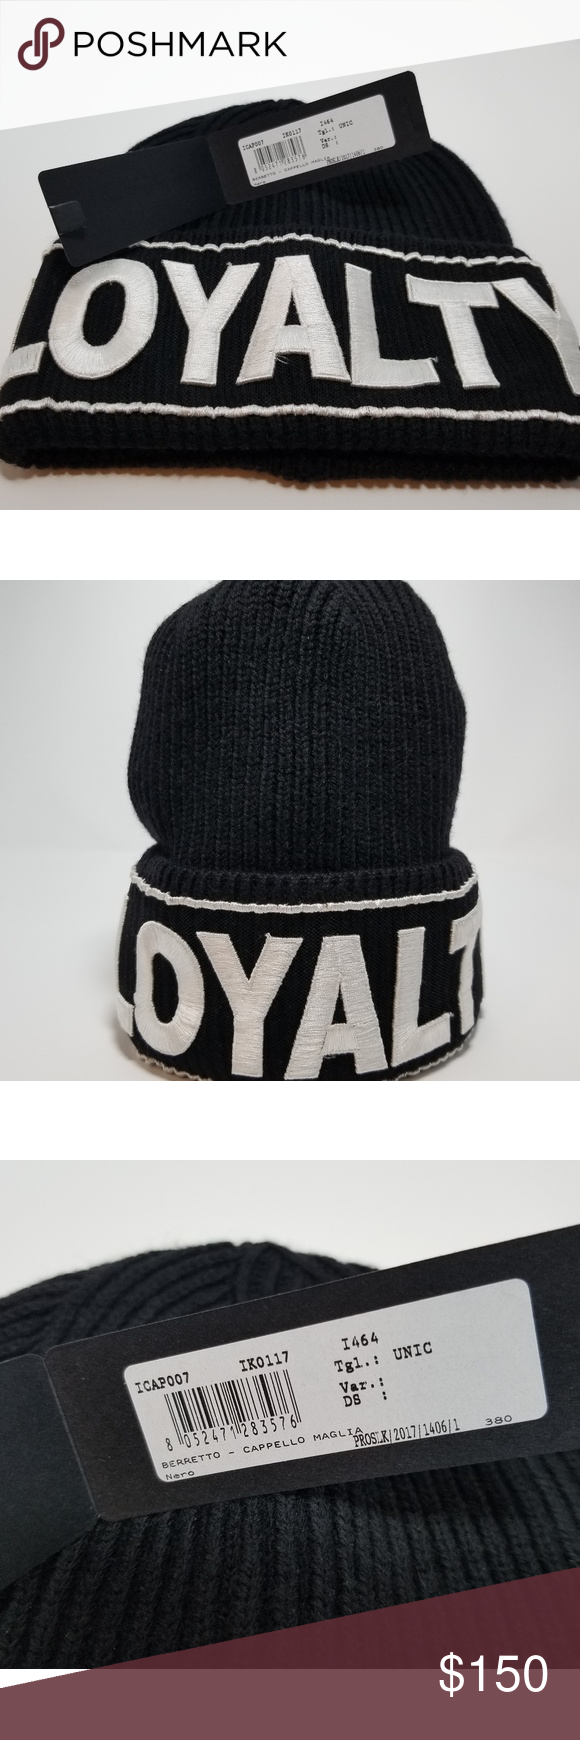 16df69e979c03 Versace LOYALTY beanie hat